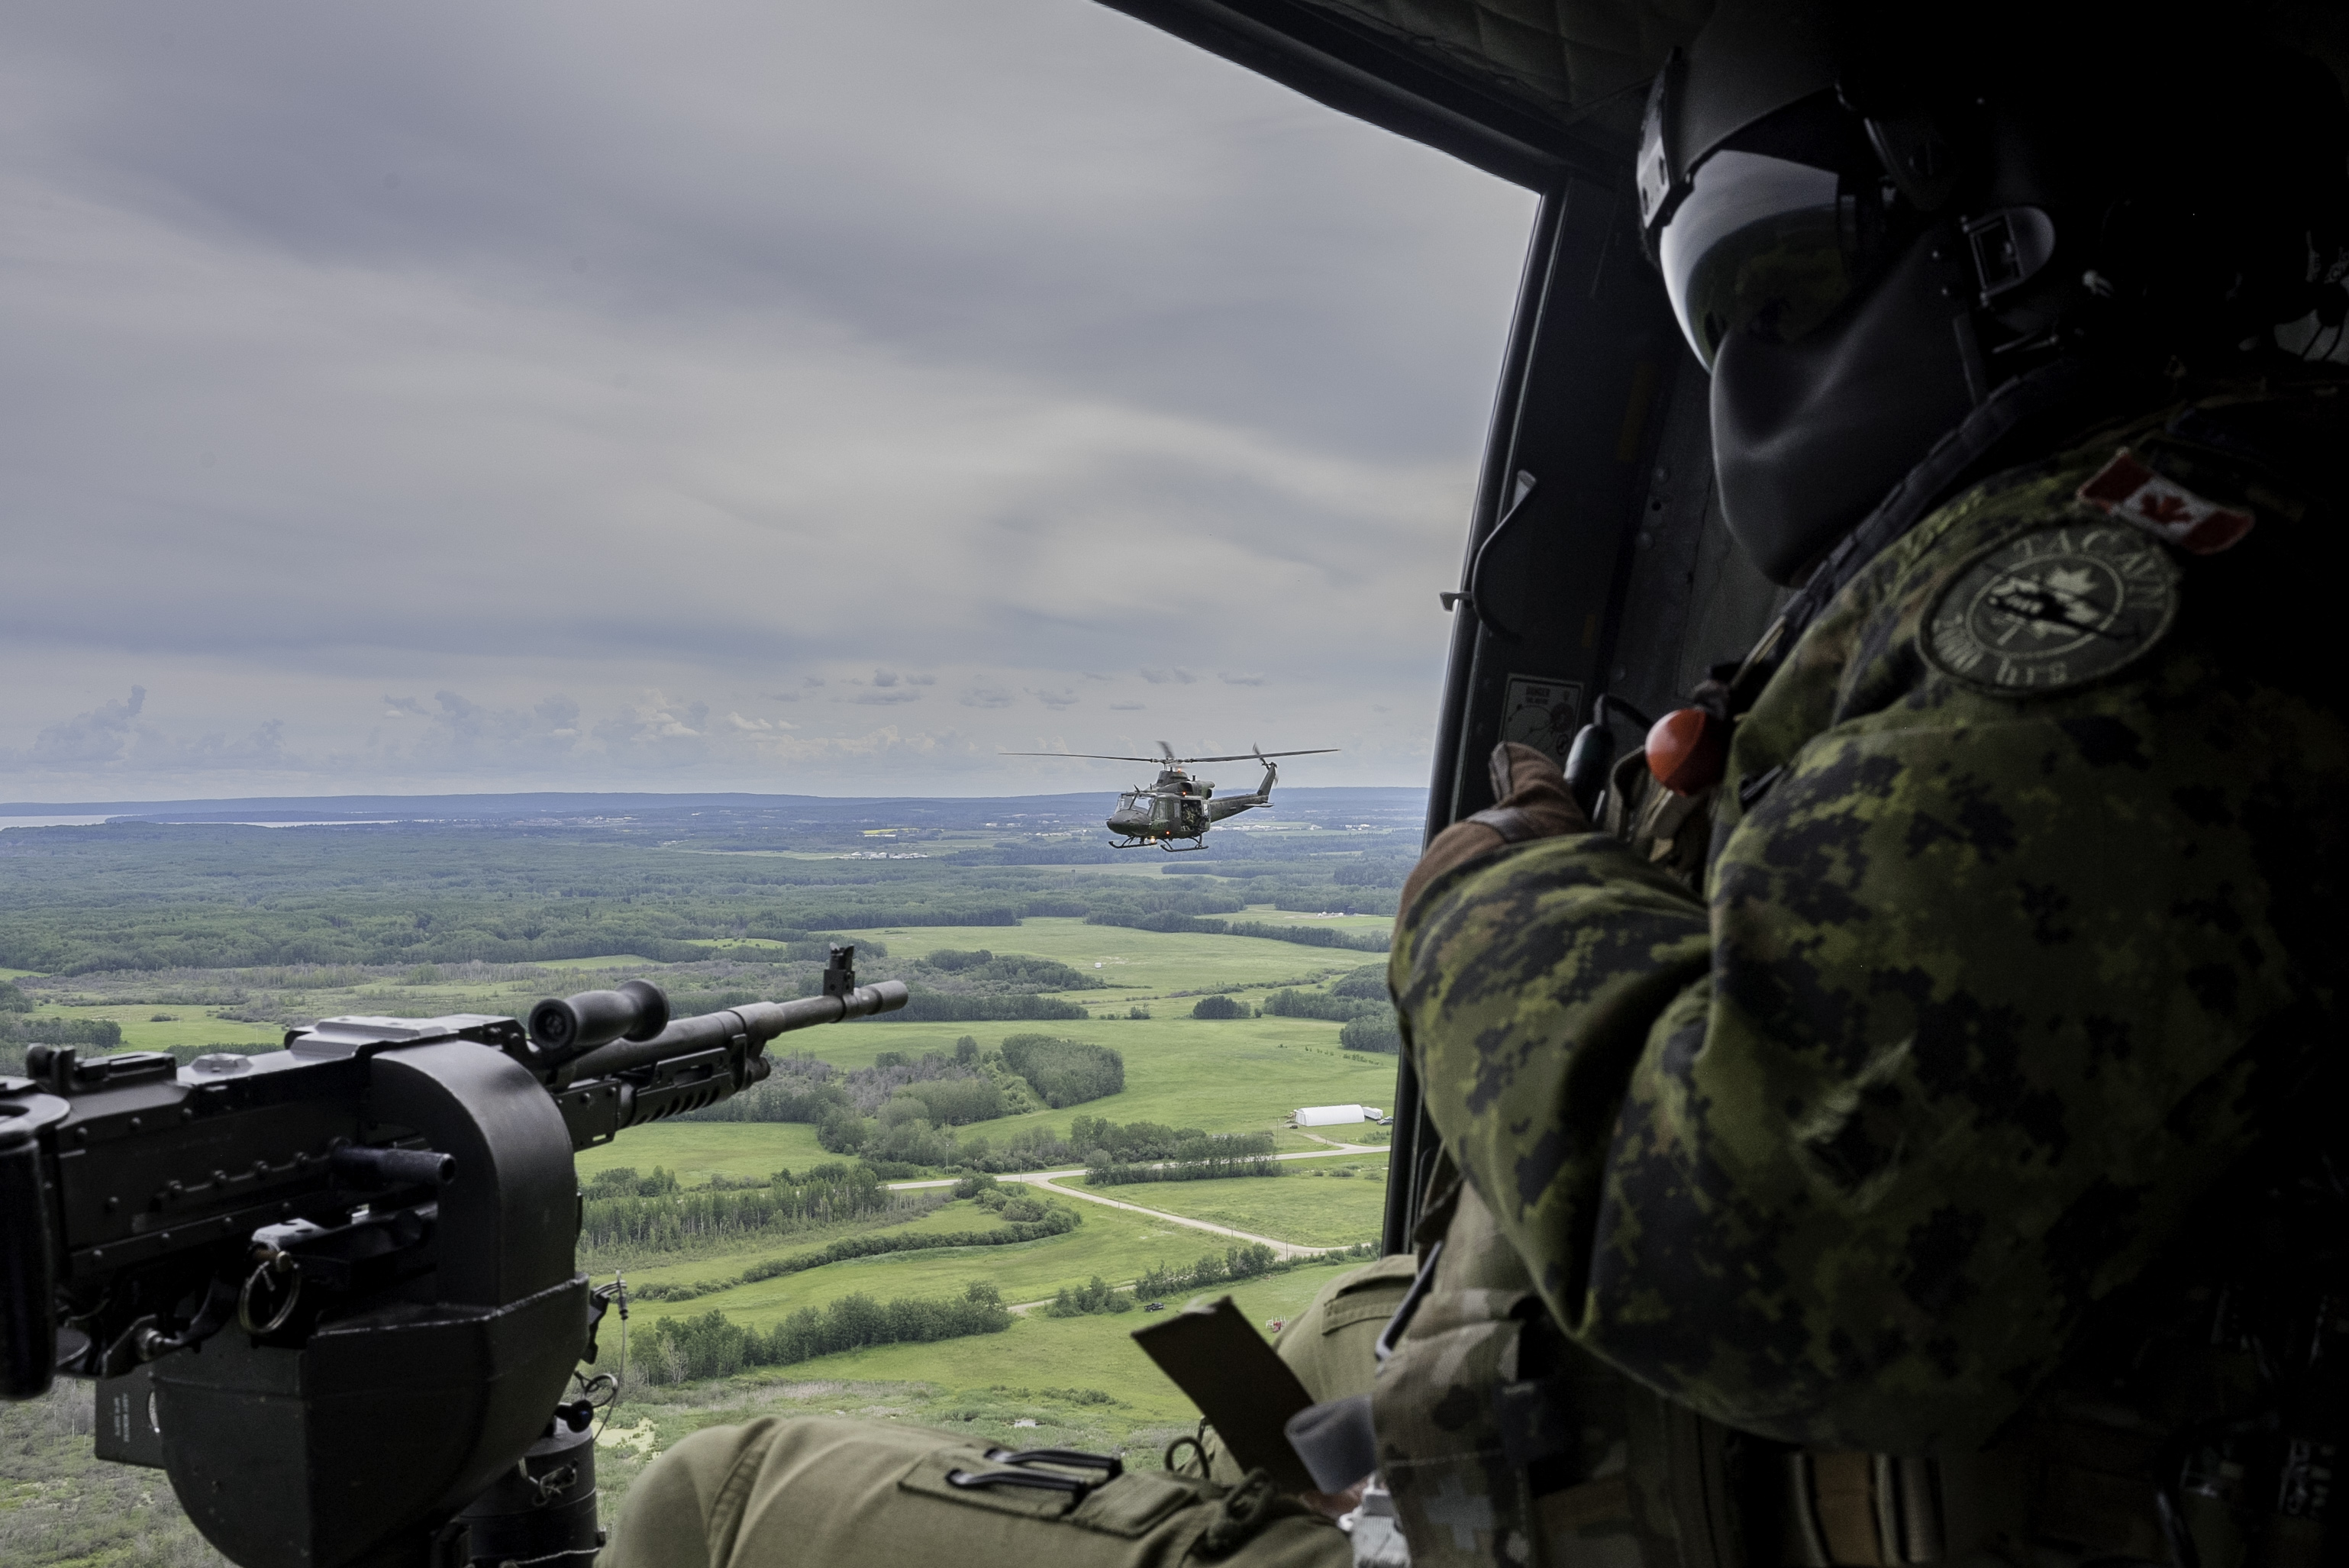 Royal Canadian Air Force CH-146 Griffons from 408 Tactical Helicopter Squadron participate in exercise Gander Gunner near 4 Wing Cold Lake, Alberta, on July 21, 2020. PHOTO: Private Connie Valin